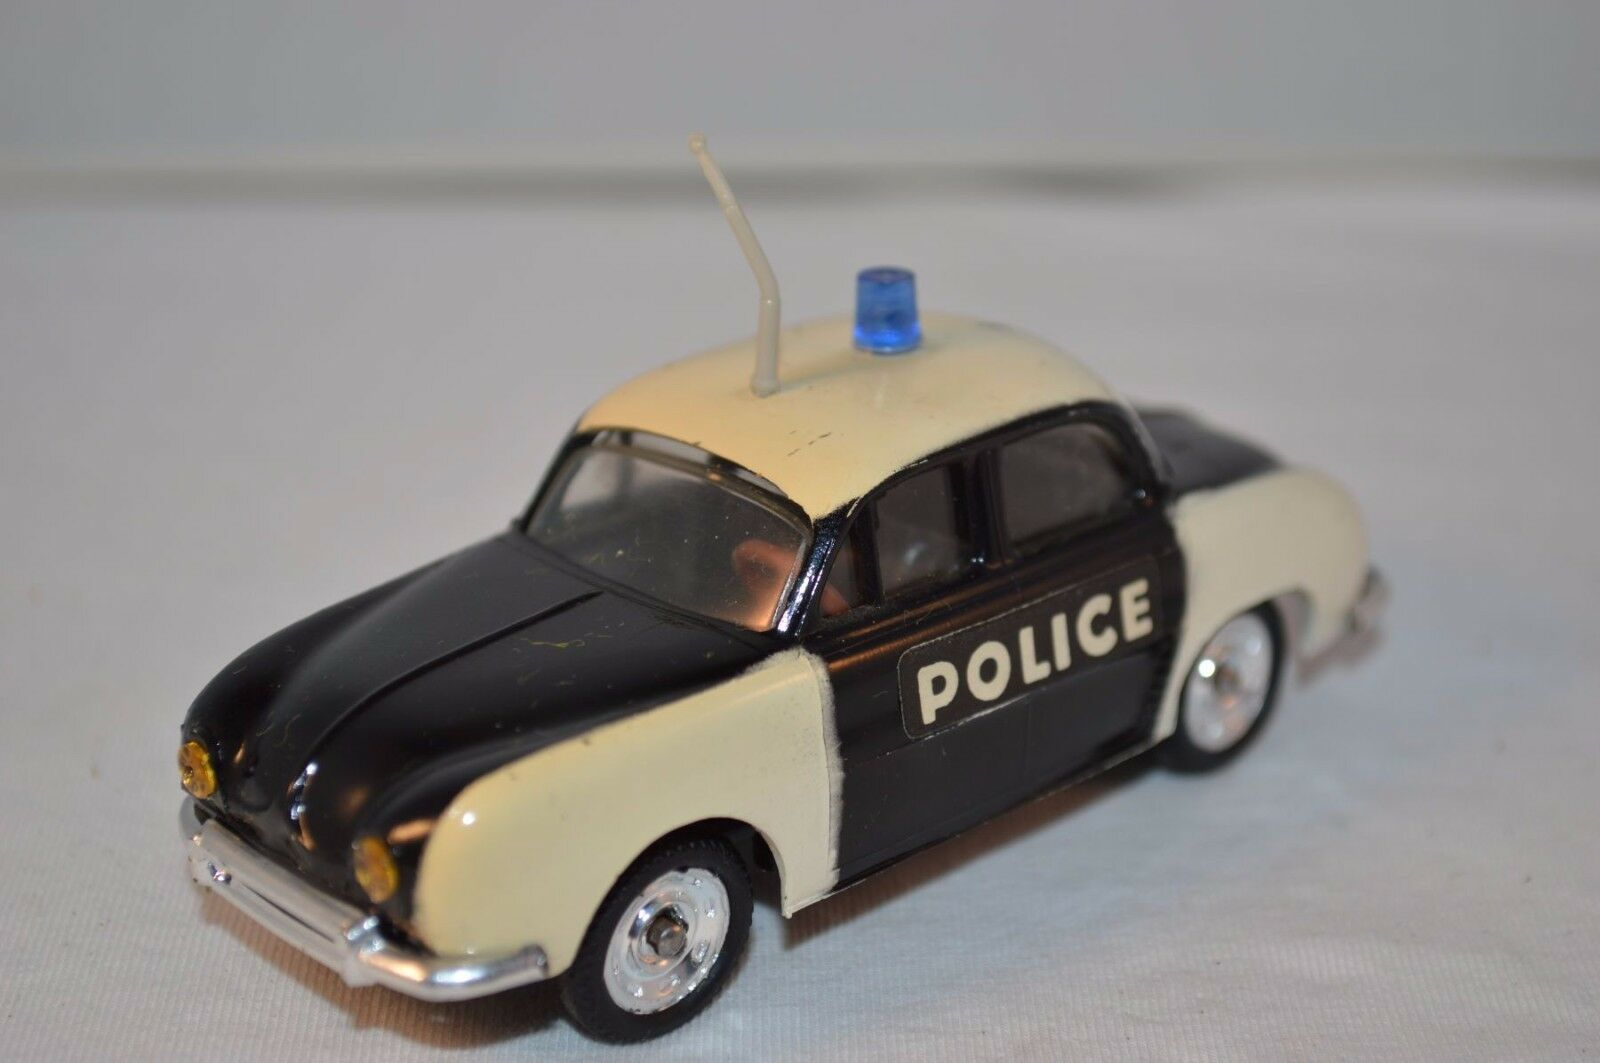 Minialuxe Renault Ondine Police excellent plus all original condition old model